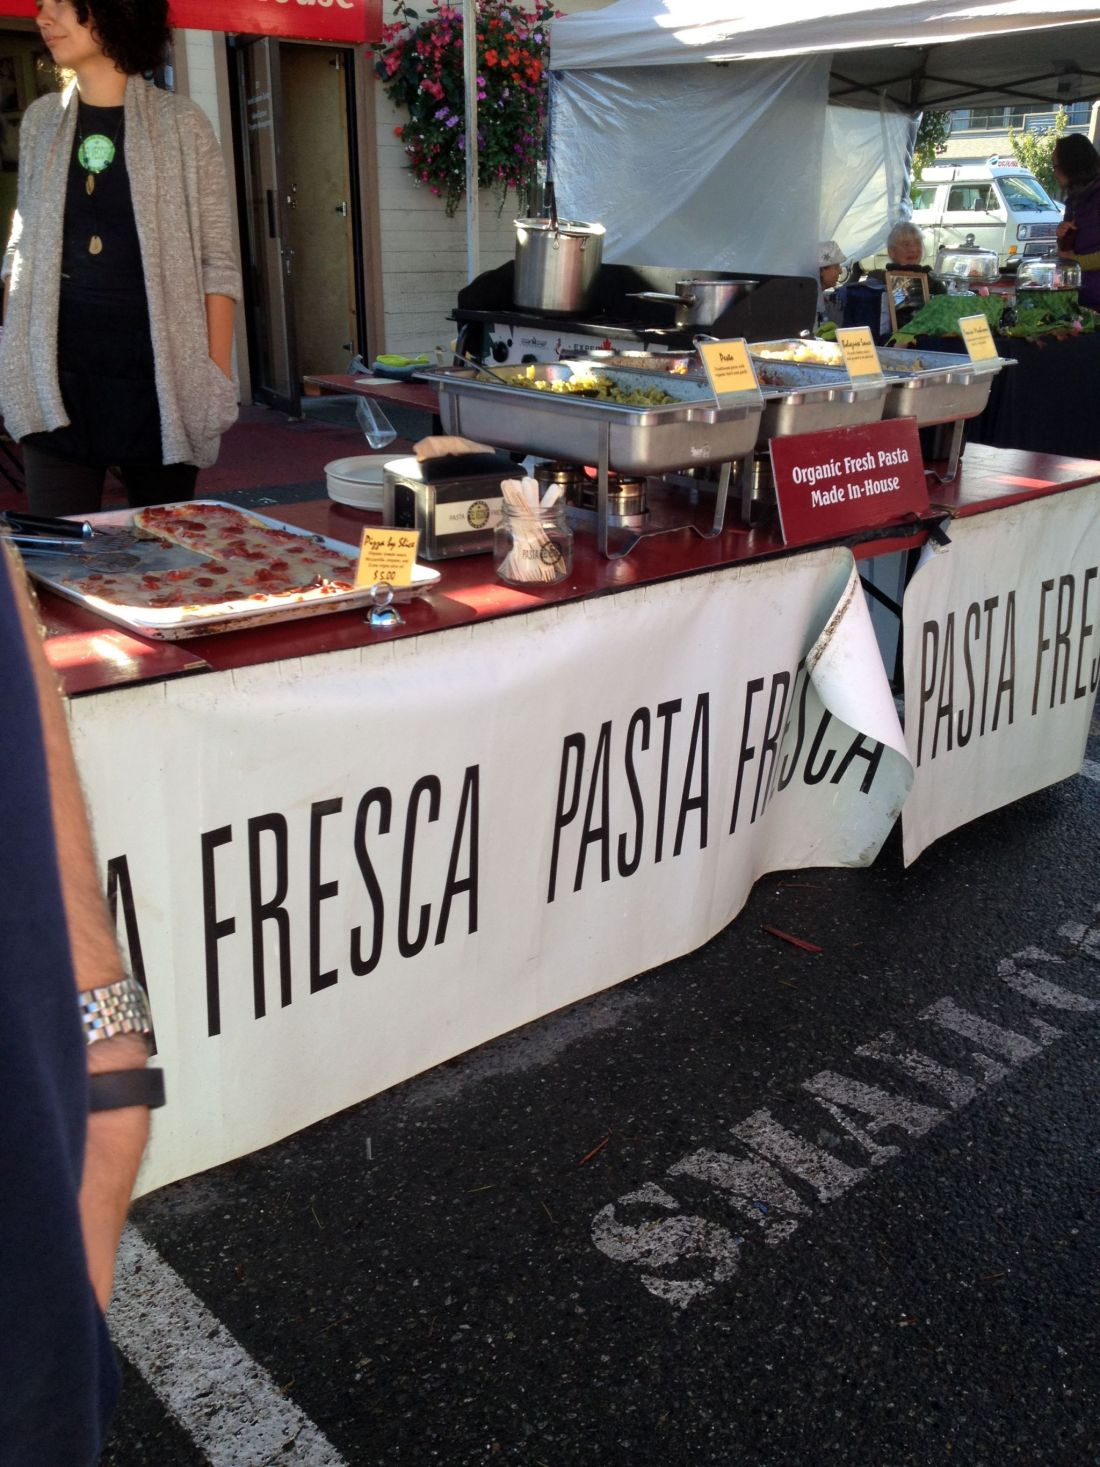 Pizza and pasta for sale on Salt Spring Island